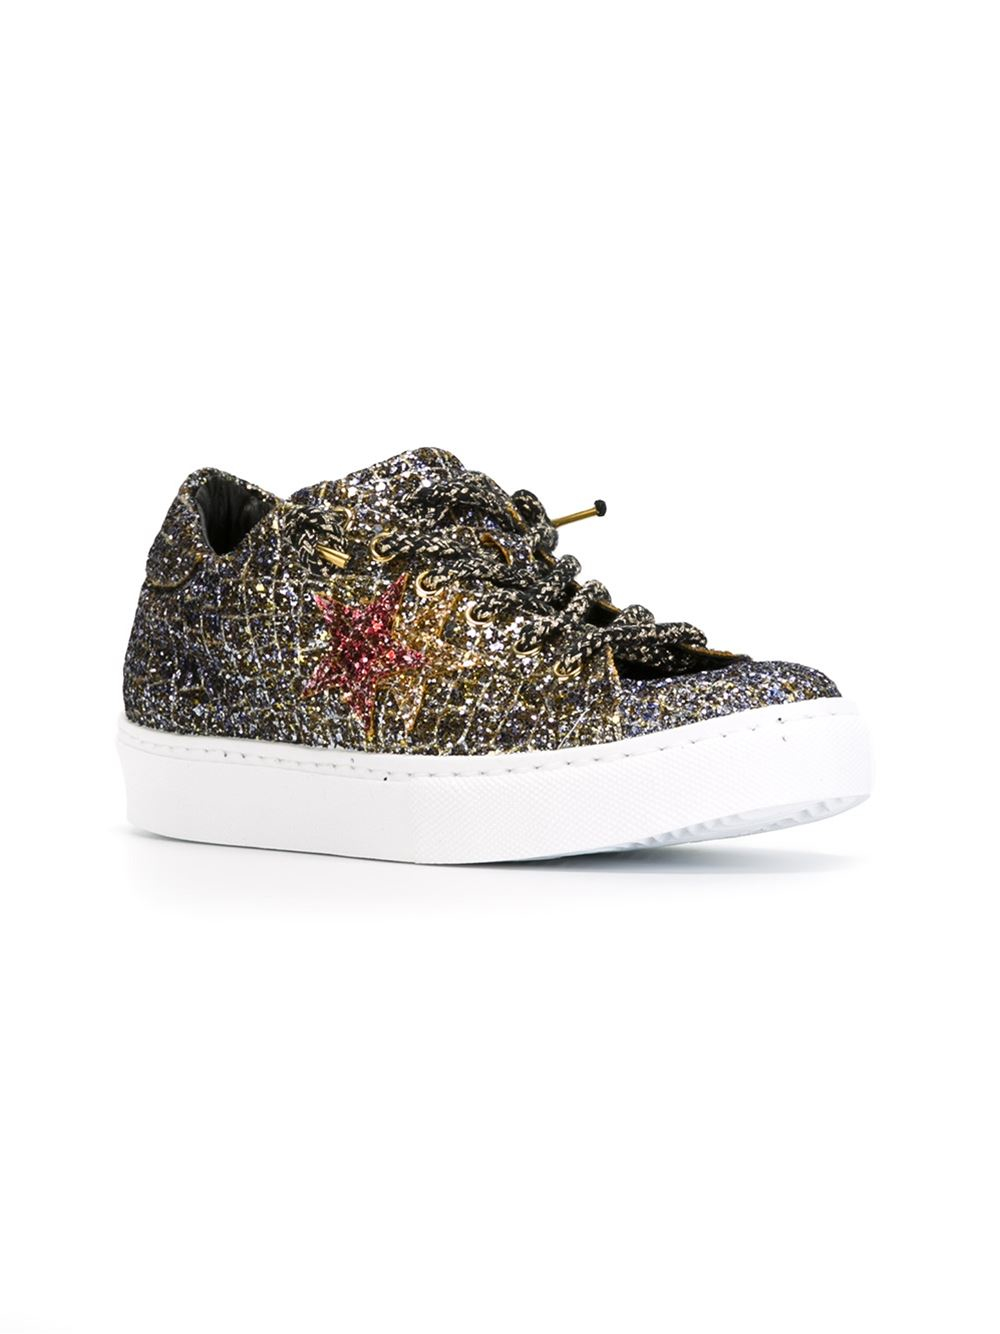 Lyst - 2Star Glitter Sneakers in Metallic a531689cf3